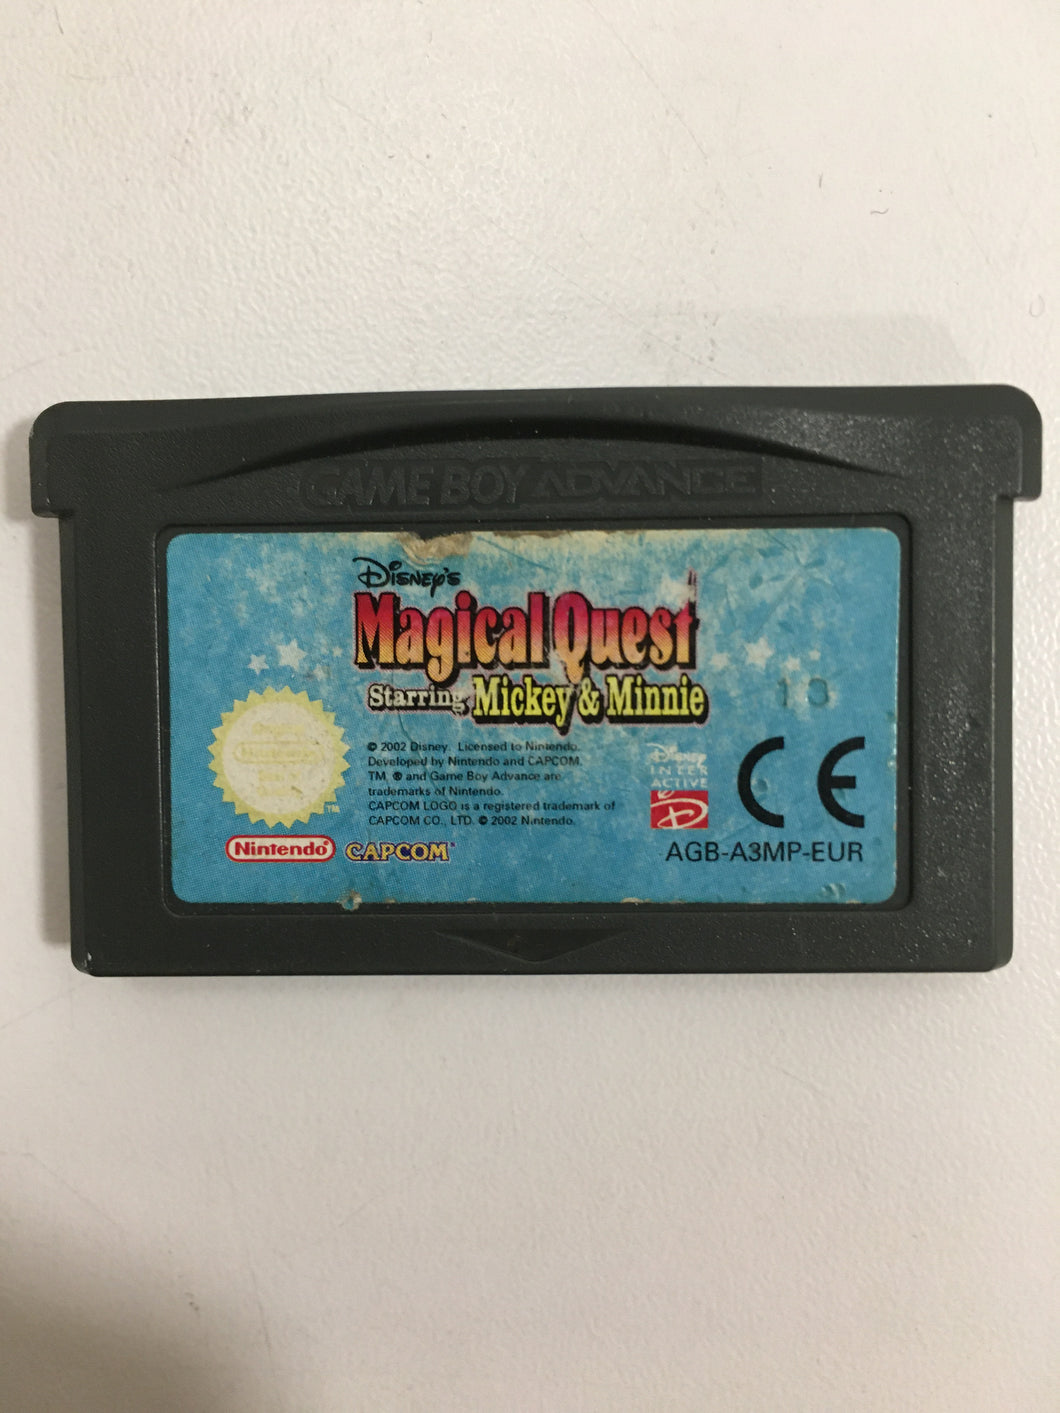 Disney magical quest Mickey et minnie Nintendo Game boy advance